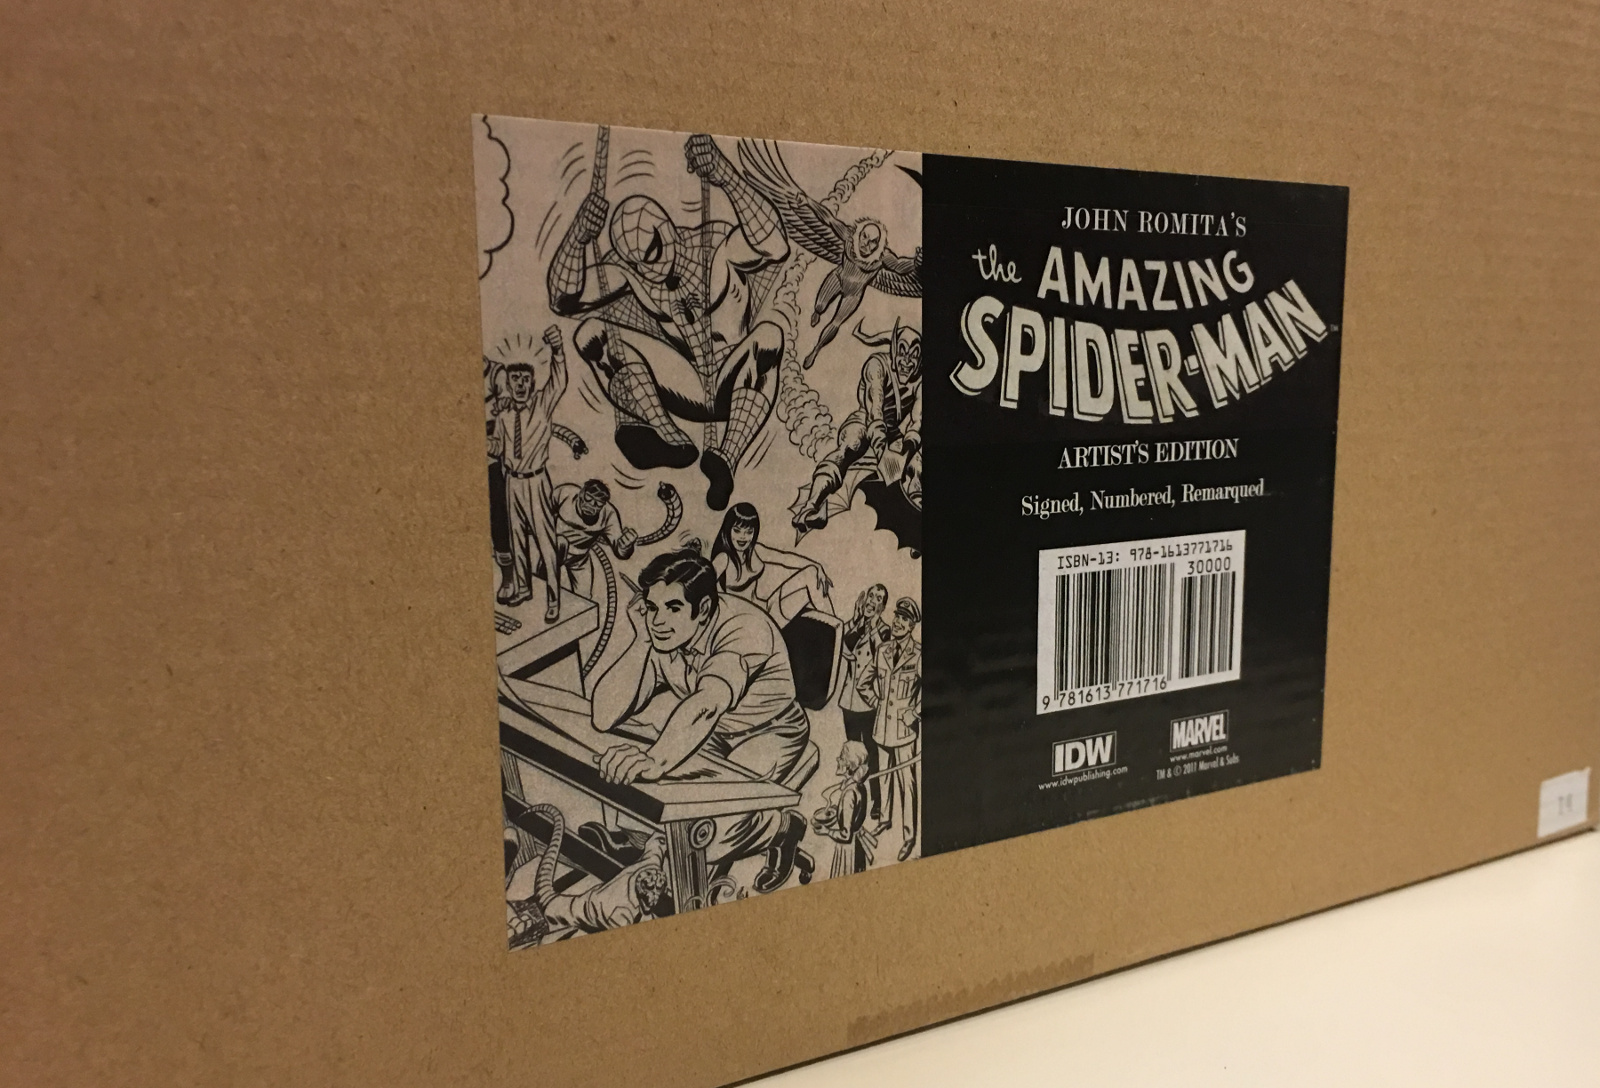 Review | John Romita's The Amazing Spider-Man Artist's Edition